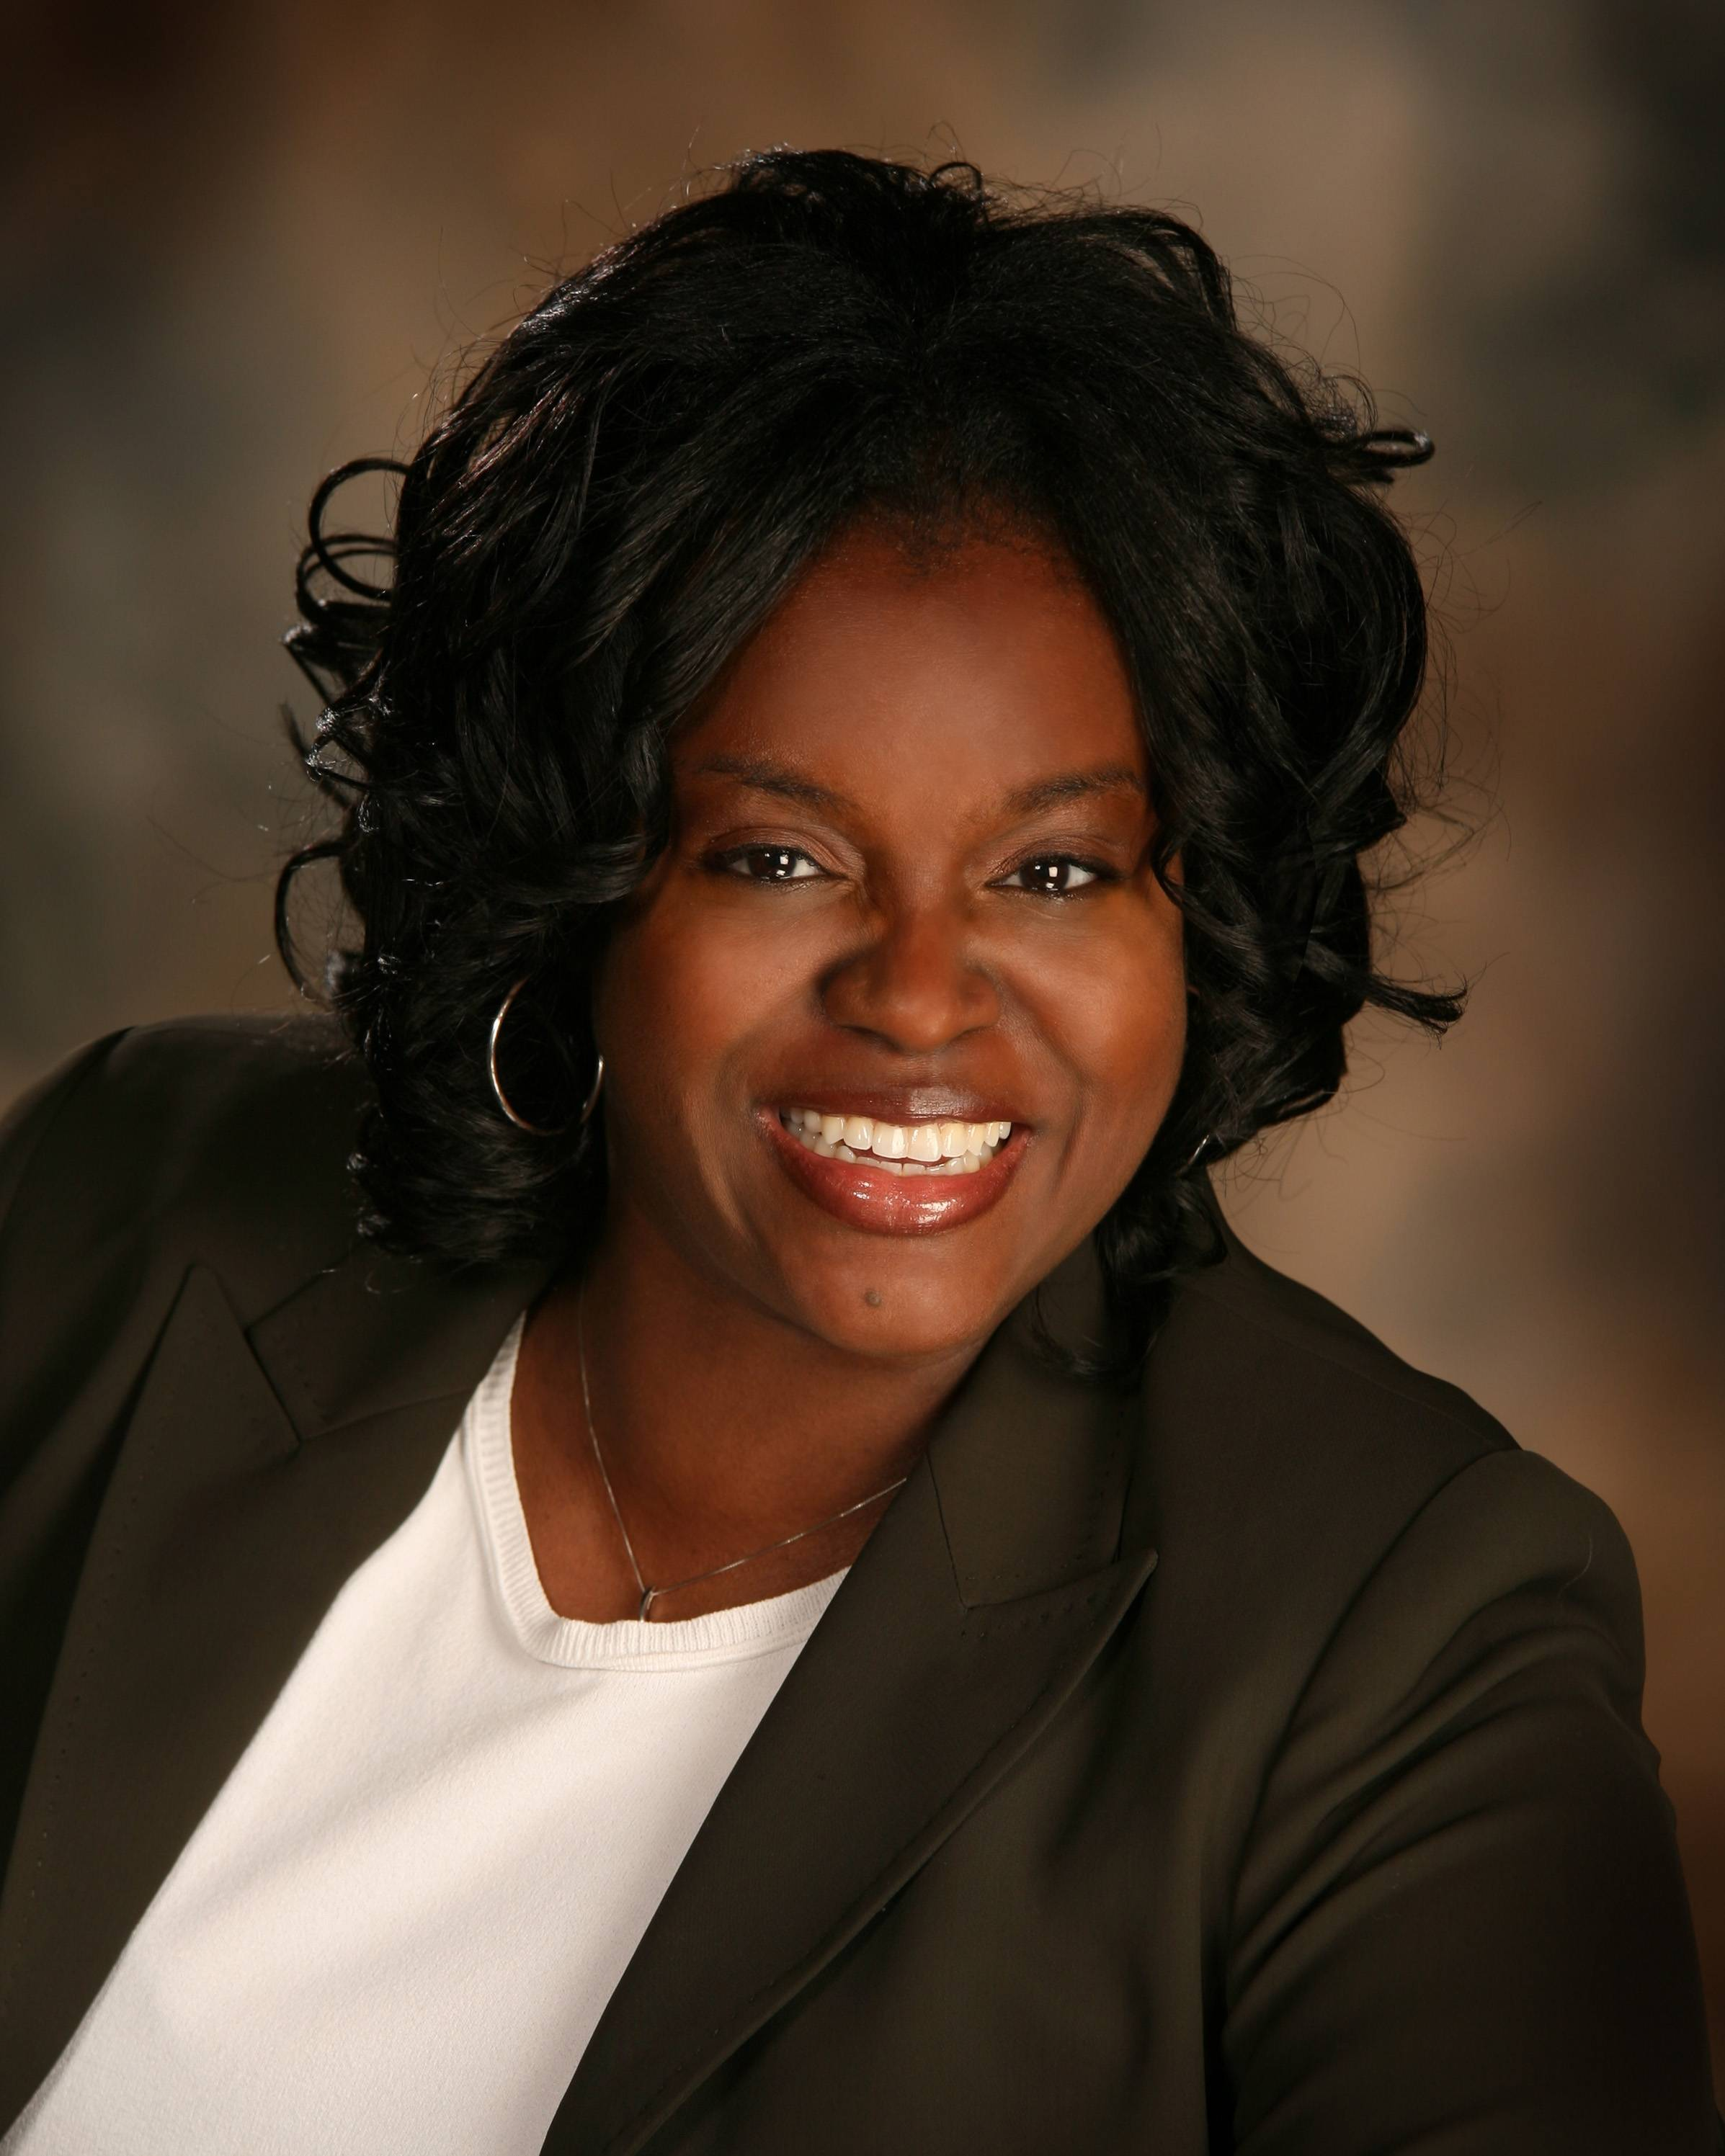 Alyssia Benford, running for DuPage Township Board (4-year Terms)